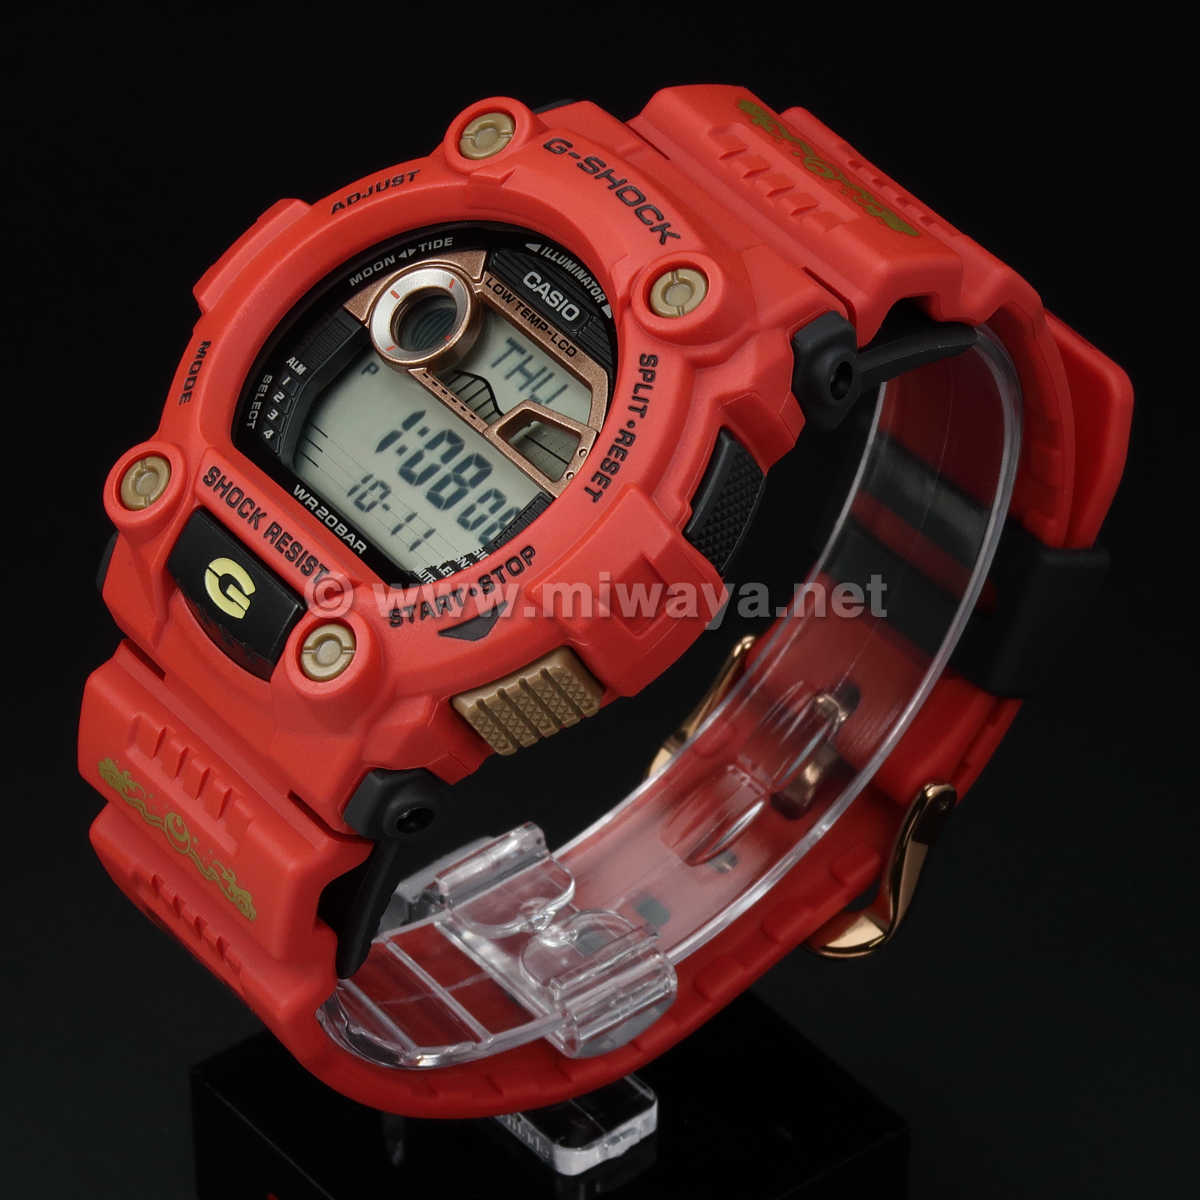 【G-SHOCK】G-7900SLG-4JR